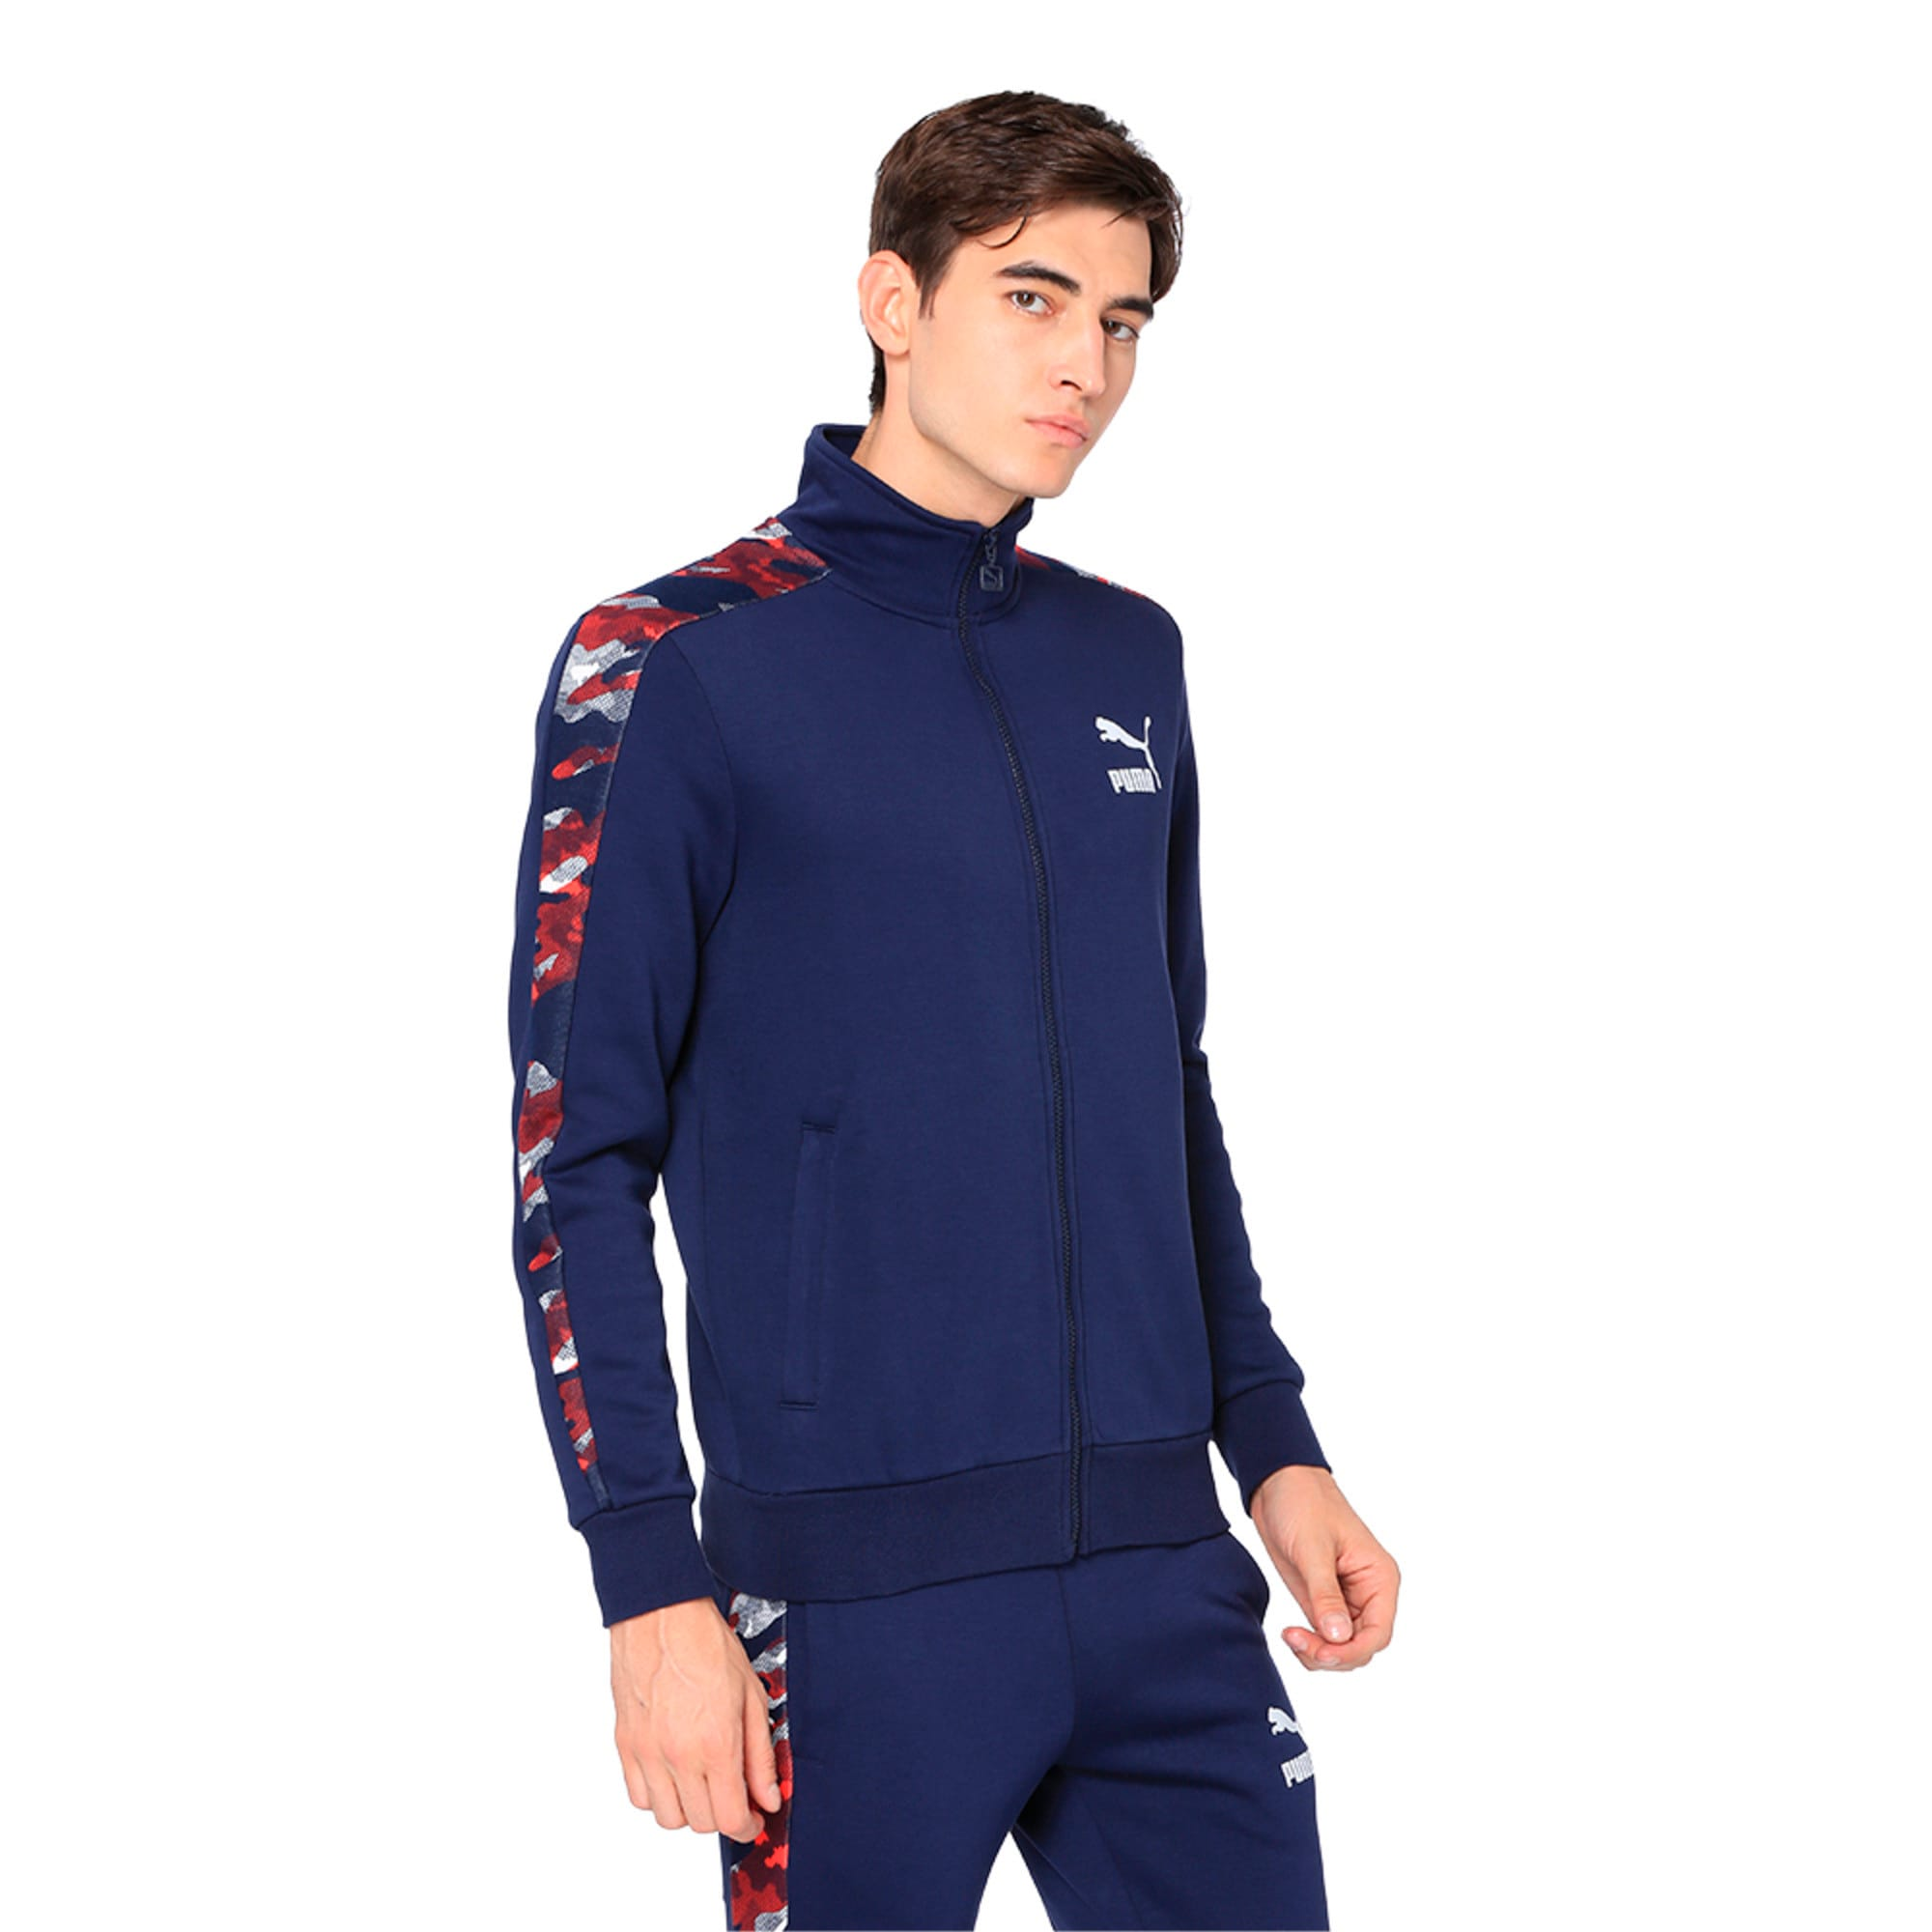 Thumbnail 1 of Classics T7 Track Jacket AOP, Peacoat, medium-IND